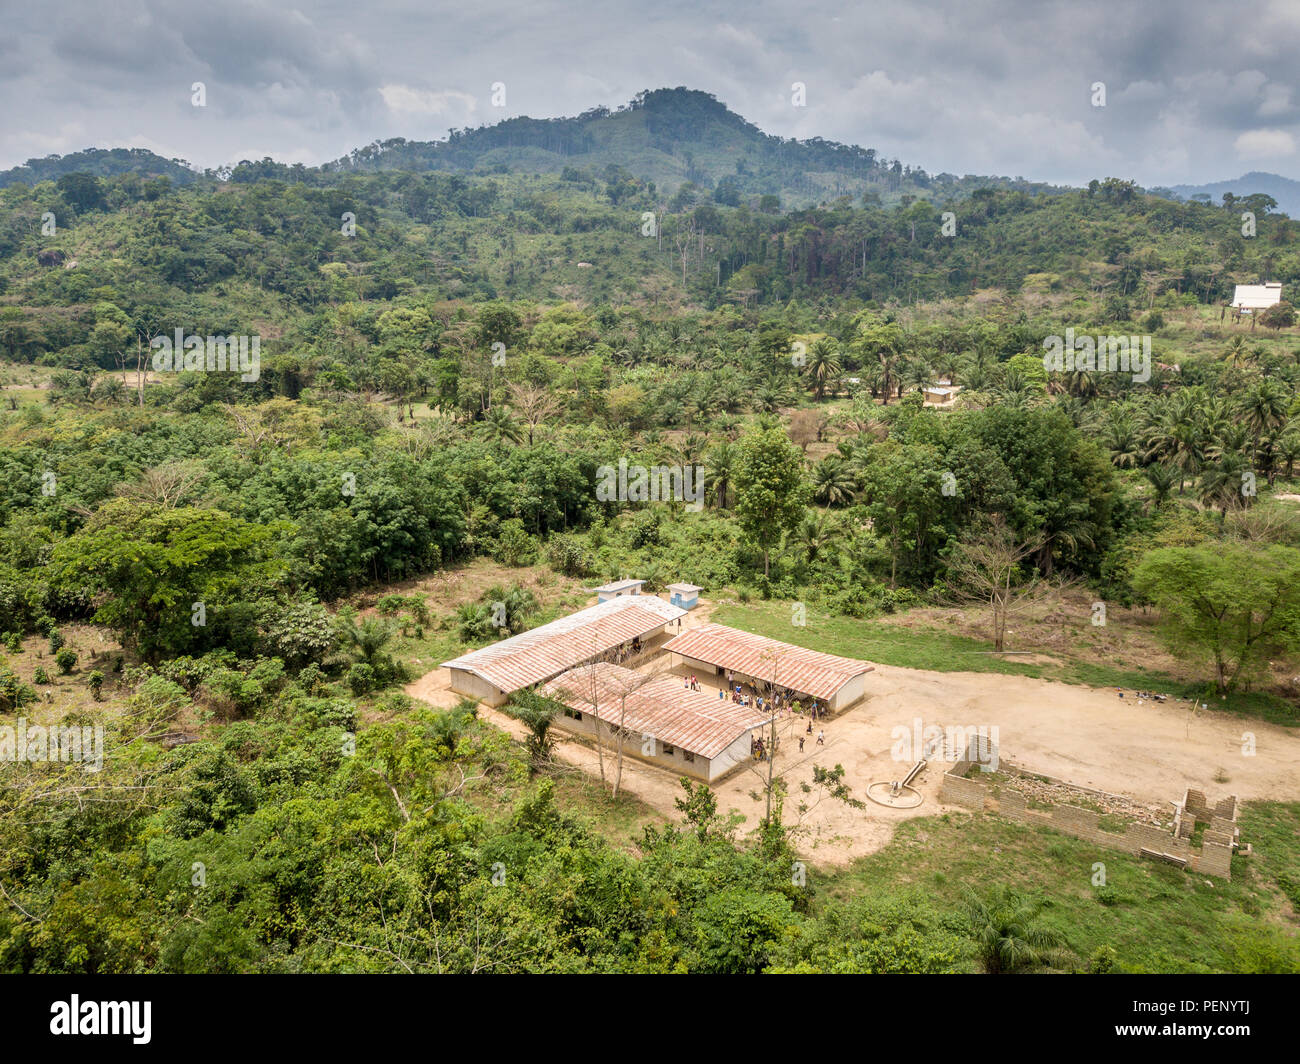 Aerial shot of a school in Ganta, Liberia - Stock Image